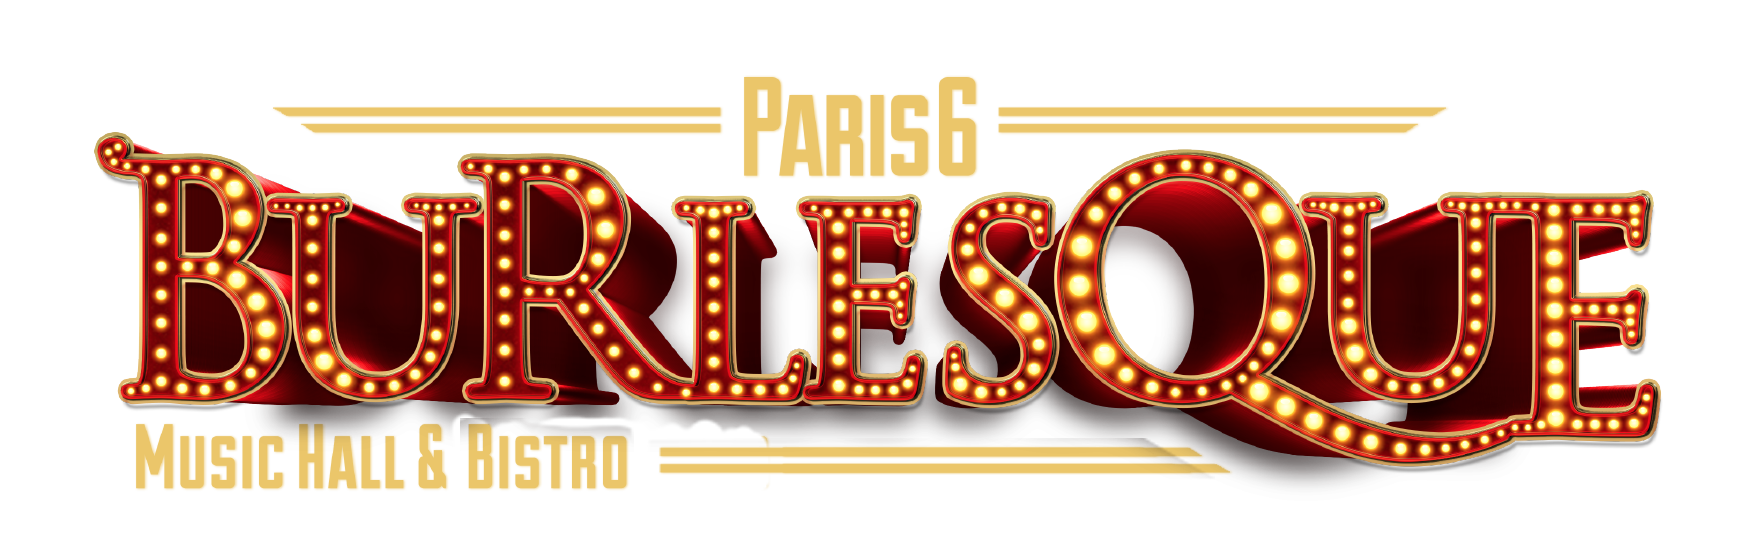 Paris 6 Burlesque